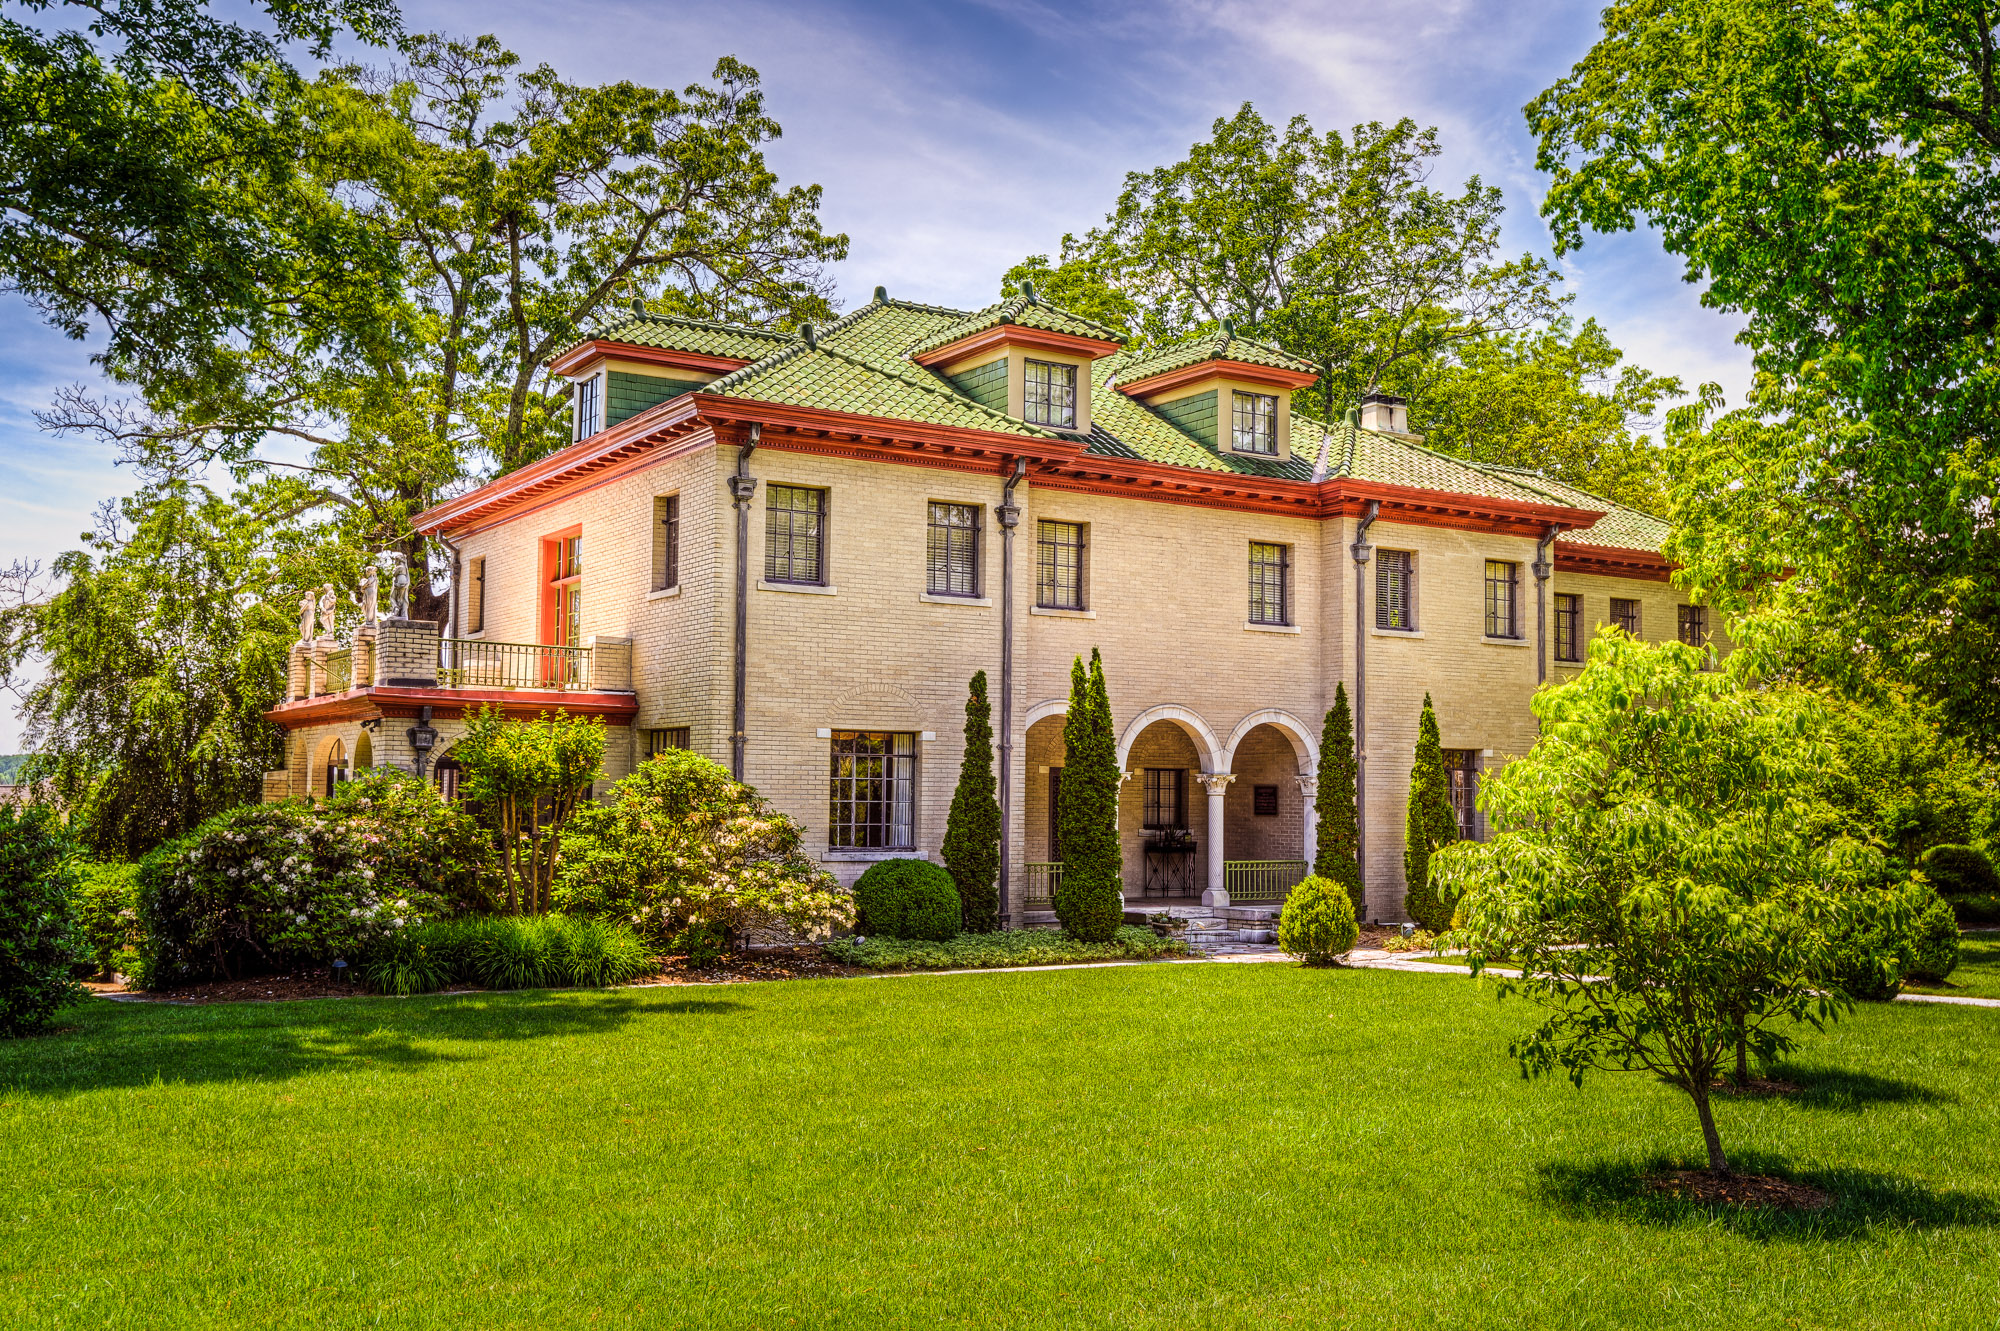 Historic 1920s mansion 1920s marrcrest estate for Long island estates for sale